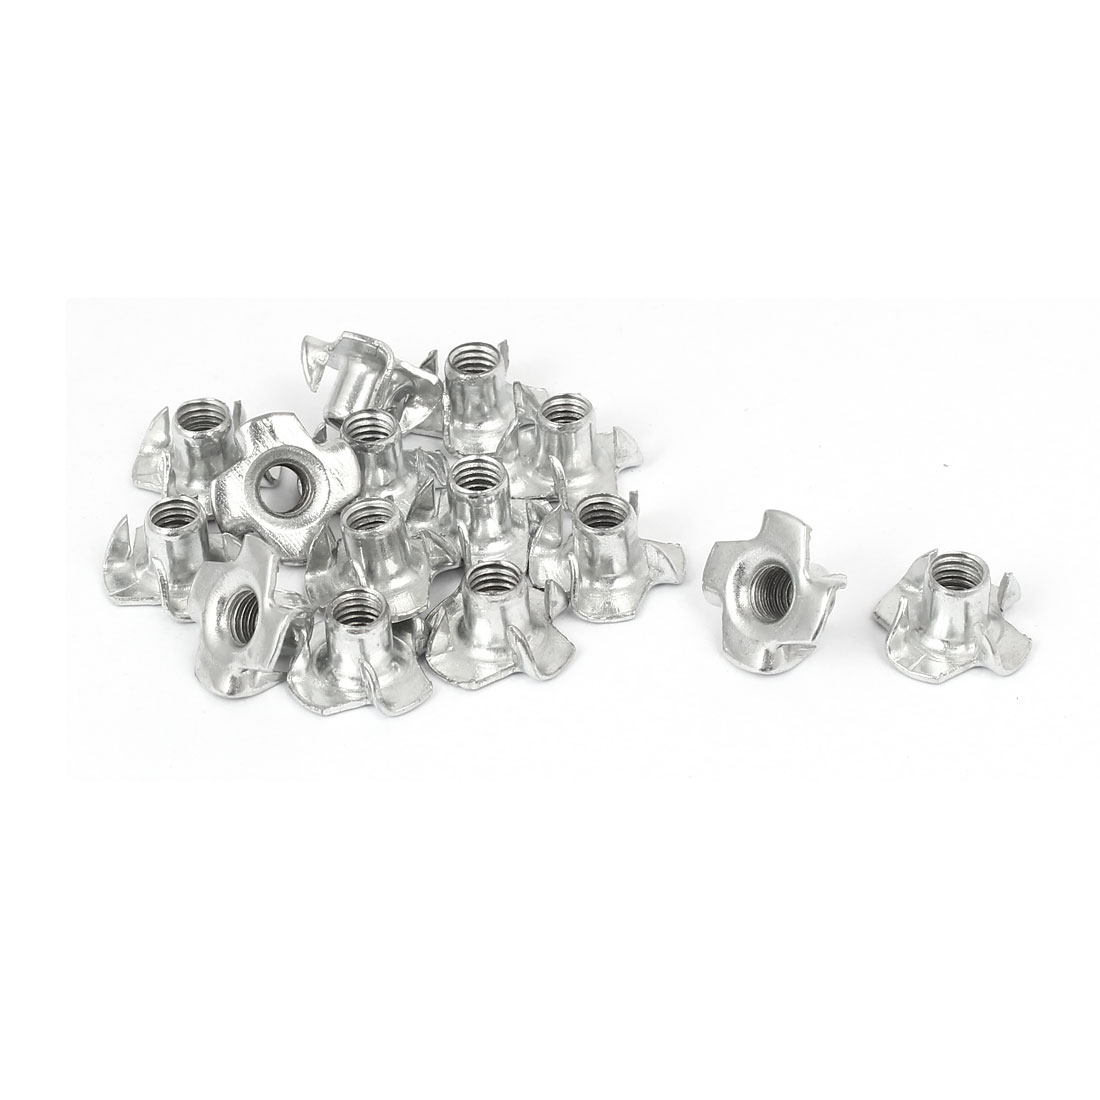 Furniture M6 Thread 9mm Length Metal 4 Prong Tee Nuts Insert Connectors 15pcs